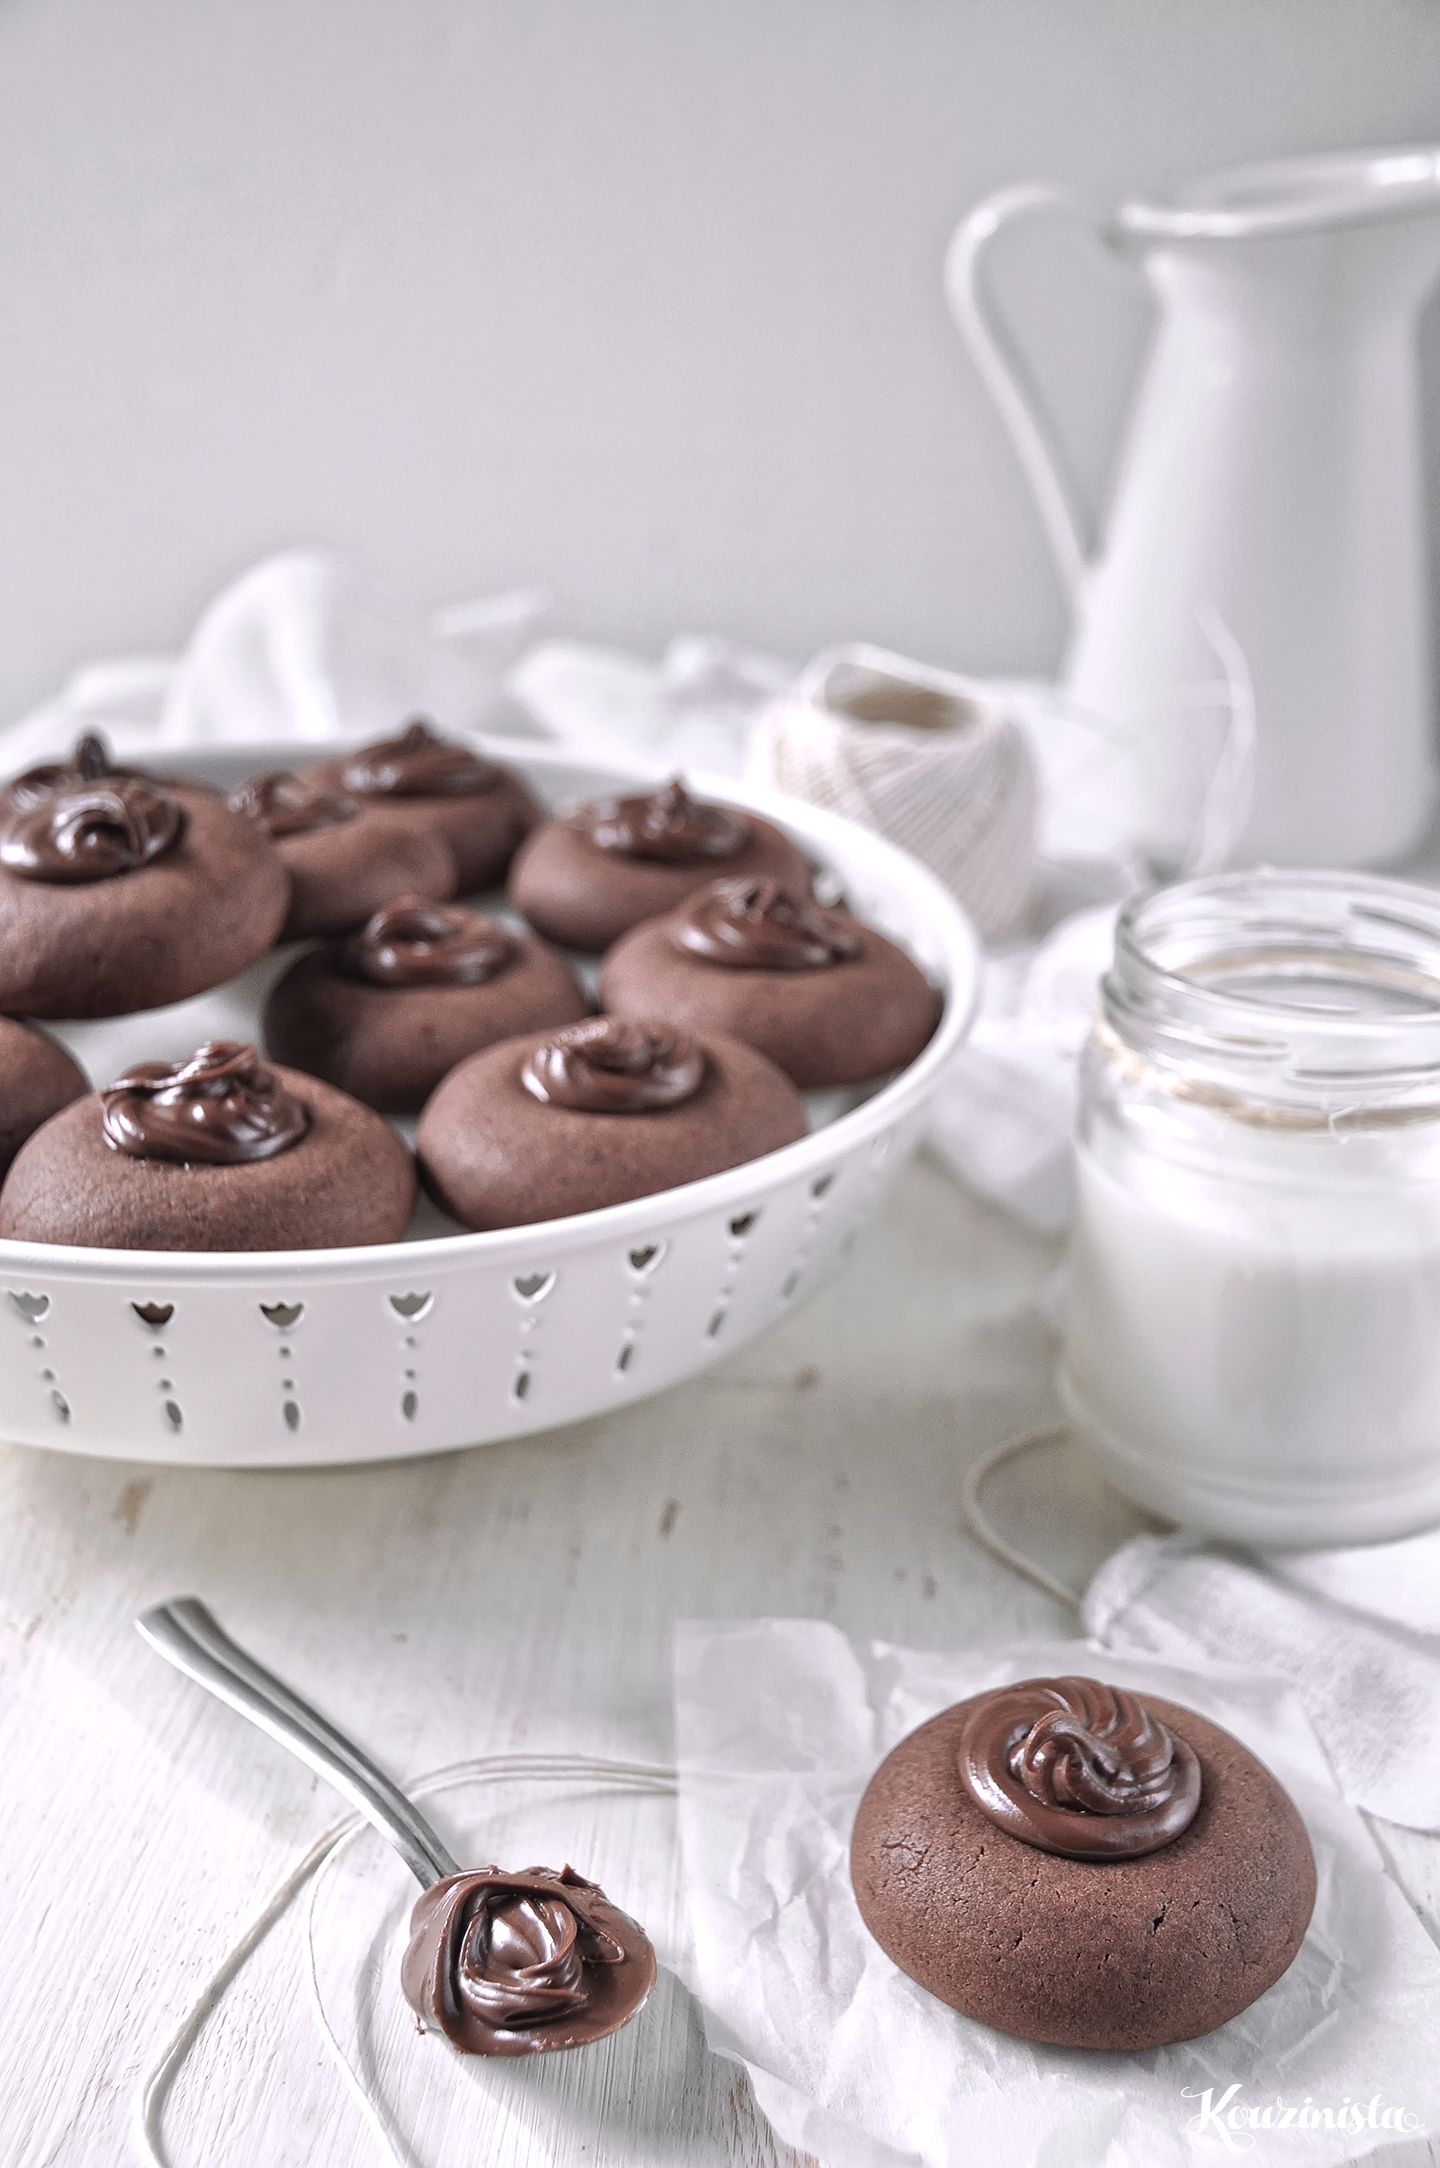 Μπισκότα με nutella (με 3 υλικά) / 3-Ingredient Nutella thumbprint cookies